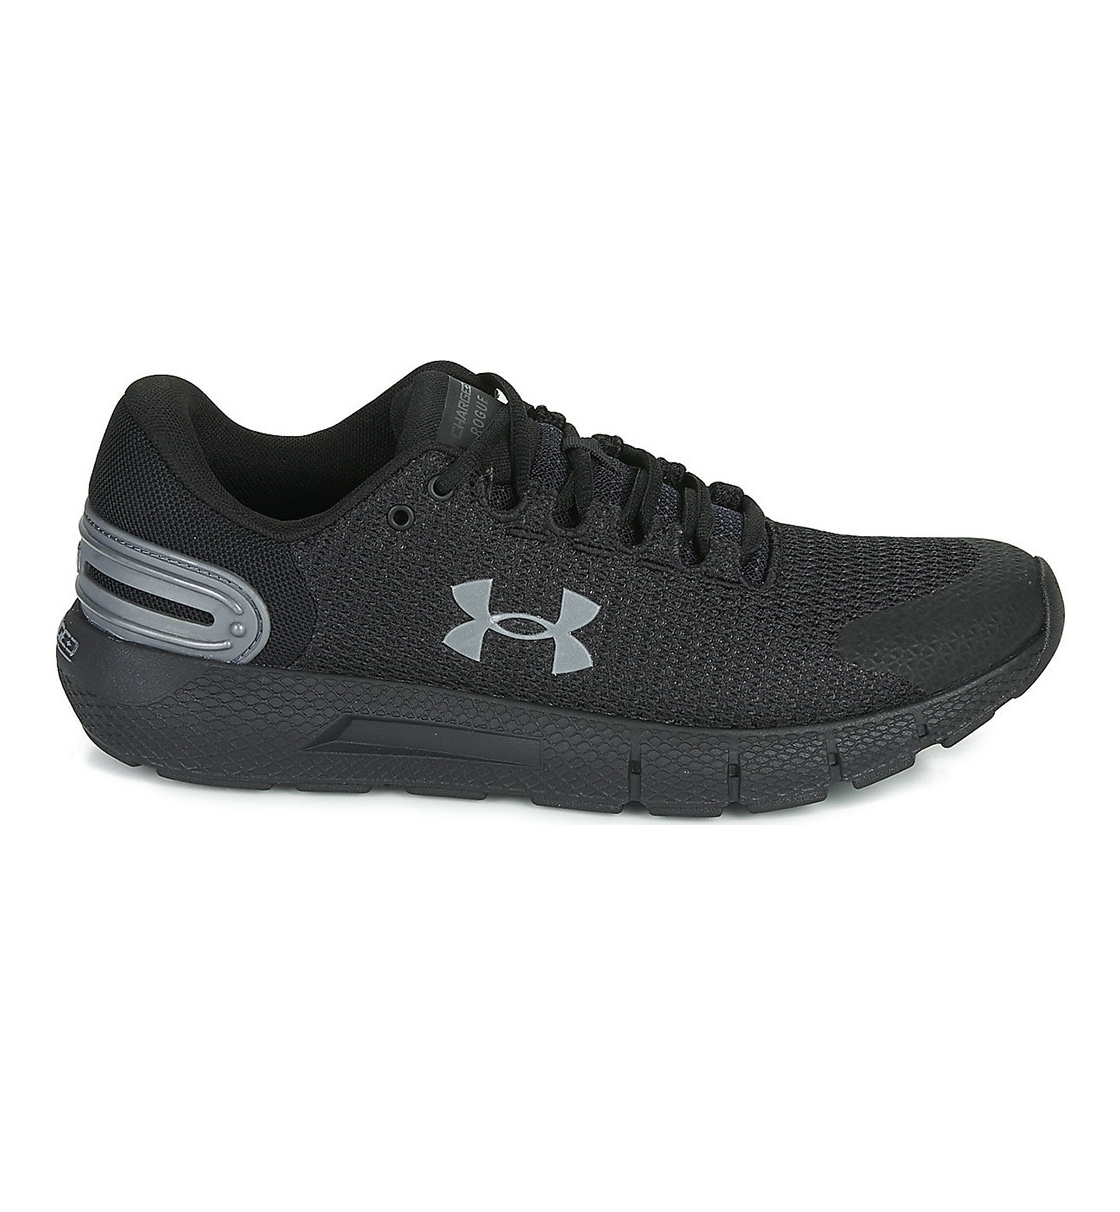 Under Armour Ανδρικό Παπούτσι Running Ss21 Charged Rogue 2.5 Rflct 3024735